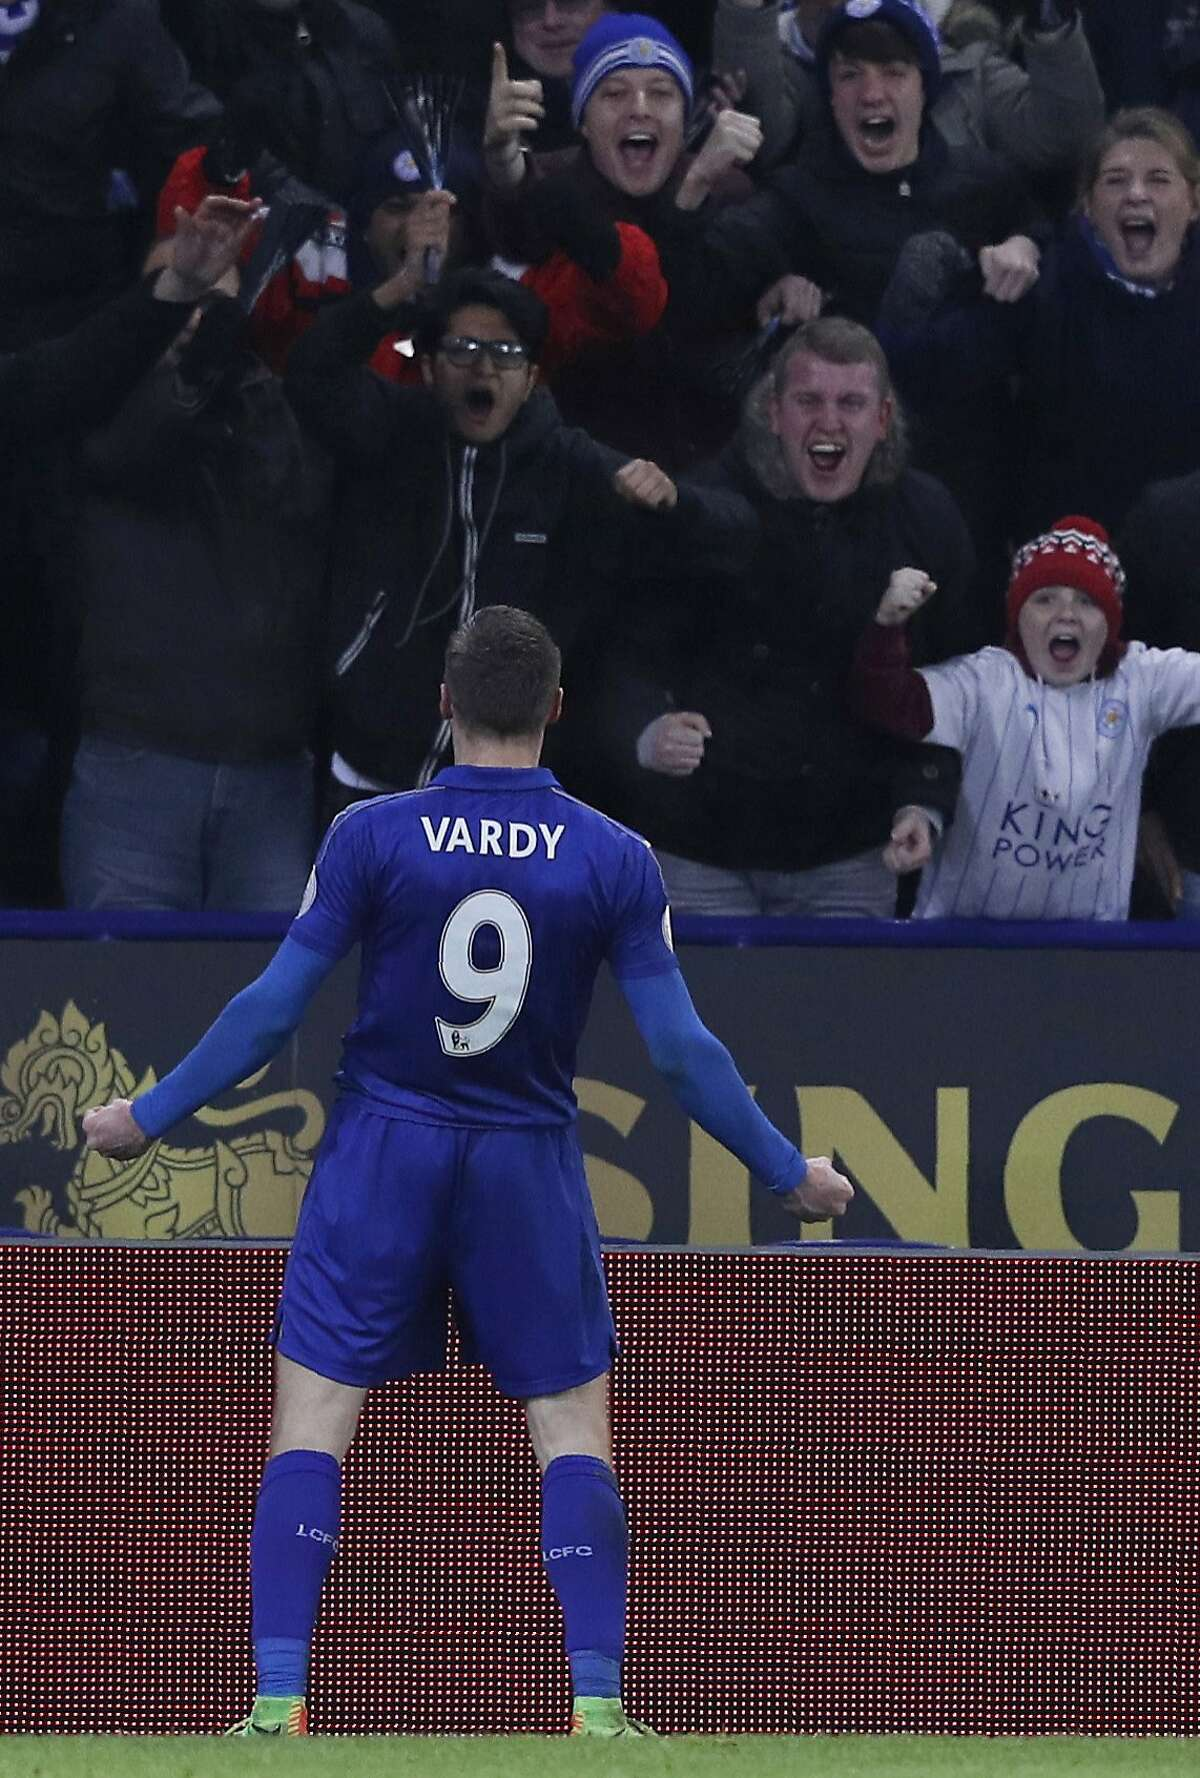 Leicester City's English striker Jamie Vardy celebrates scoring his team's third goal during the English Premier League football match between Leicester City and Liverpool at King Power Stadium in Leicester, central England on February 27, 2017. / AFP PHOTO / ADRIAN DENNIS / RESTRICTED TO EDITORIAL USE. No use with unauthorized audio, video, data, fixture lists, club/league logos or 'live' services. Online in-match use limited to 75 images, no video emulation. No use in betting, games or single club/league/player publications. / ADRIAN DENNIS/AFP/Getty Images